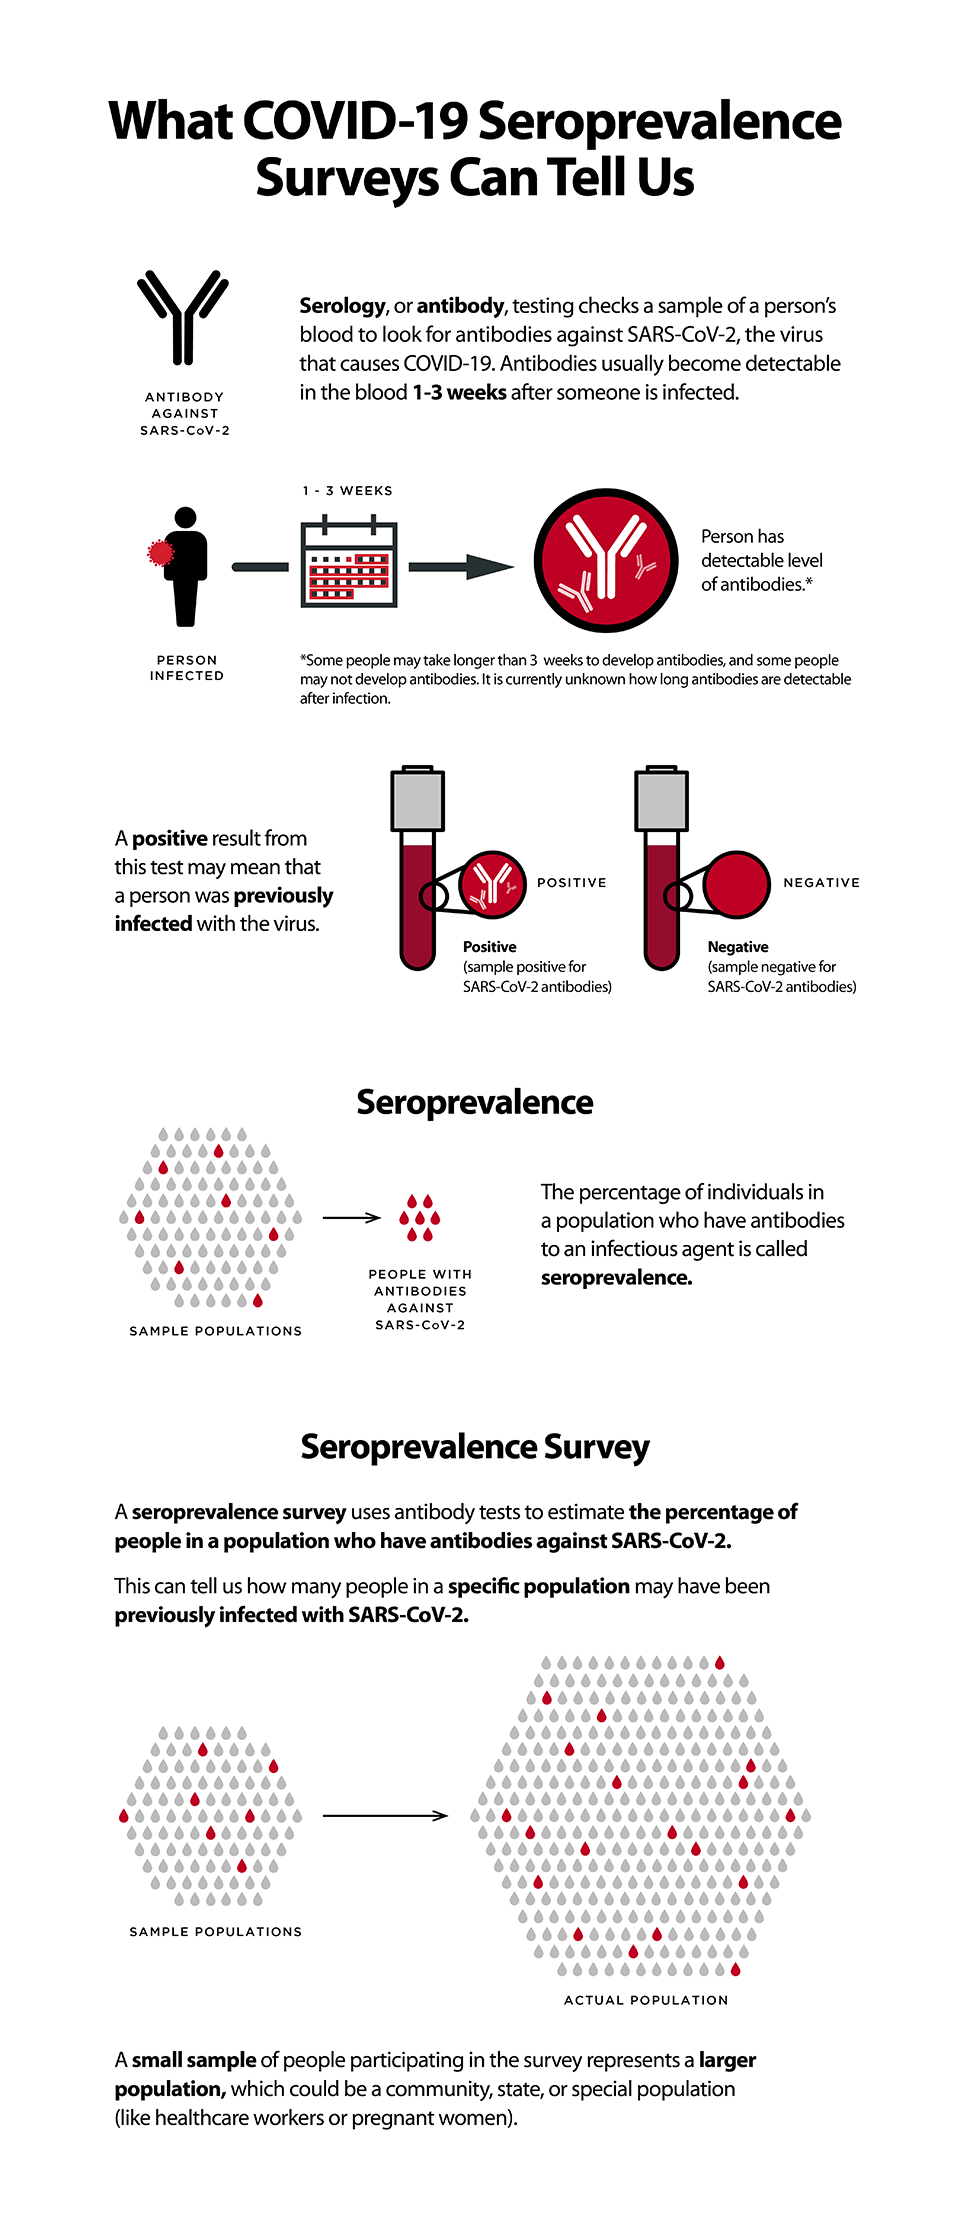 Infographic: A seroprevalence survey uses antibody tests to estimate the percentage of people in a population who have antibodies against SARS-CoV-2. This page includes a graphic explaining how seroprevlance surveys use antibody test to measure the percent of a population likely have a past infections with SARS-CoV-2, the virus that causes COVID-19.